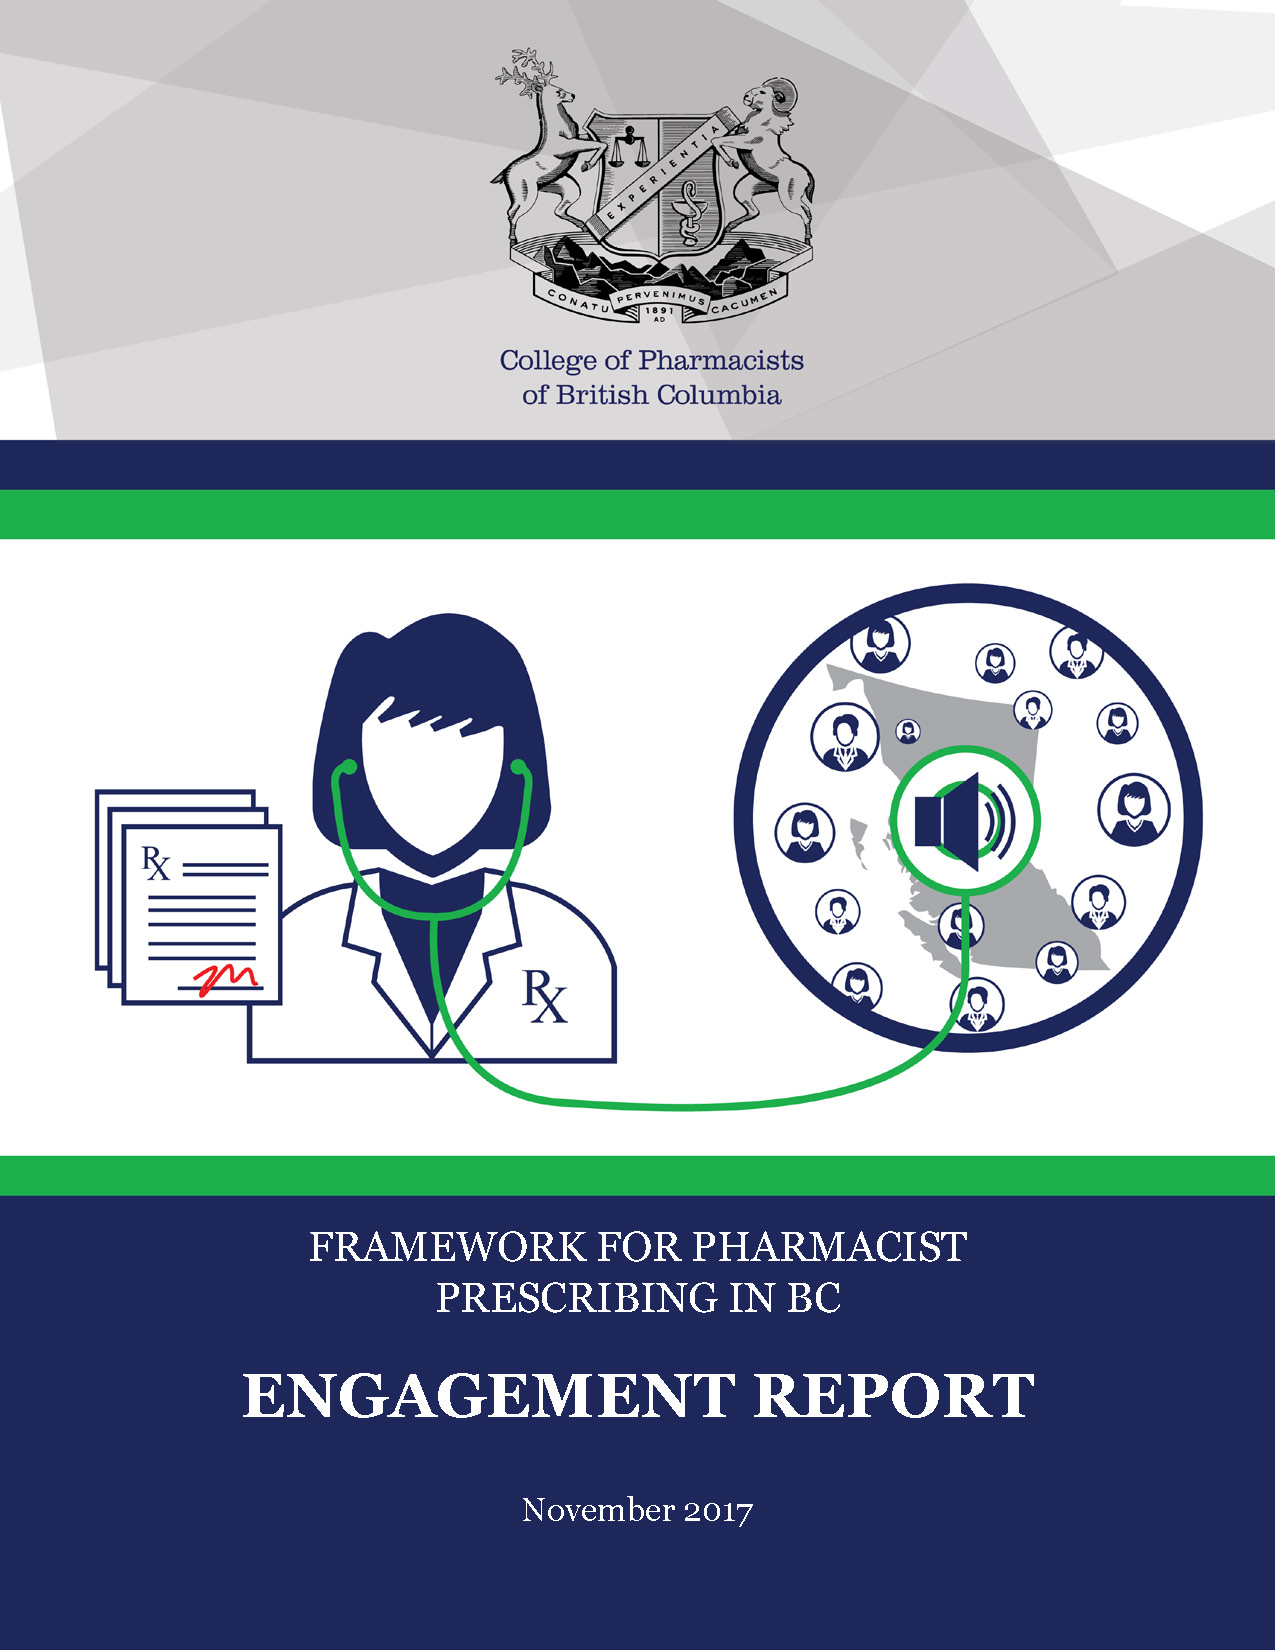 Engagement Report